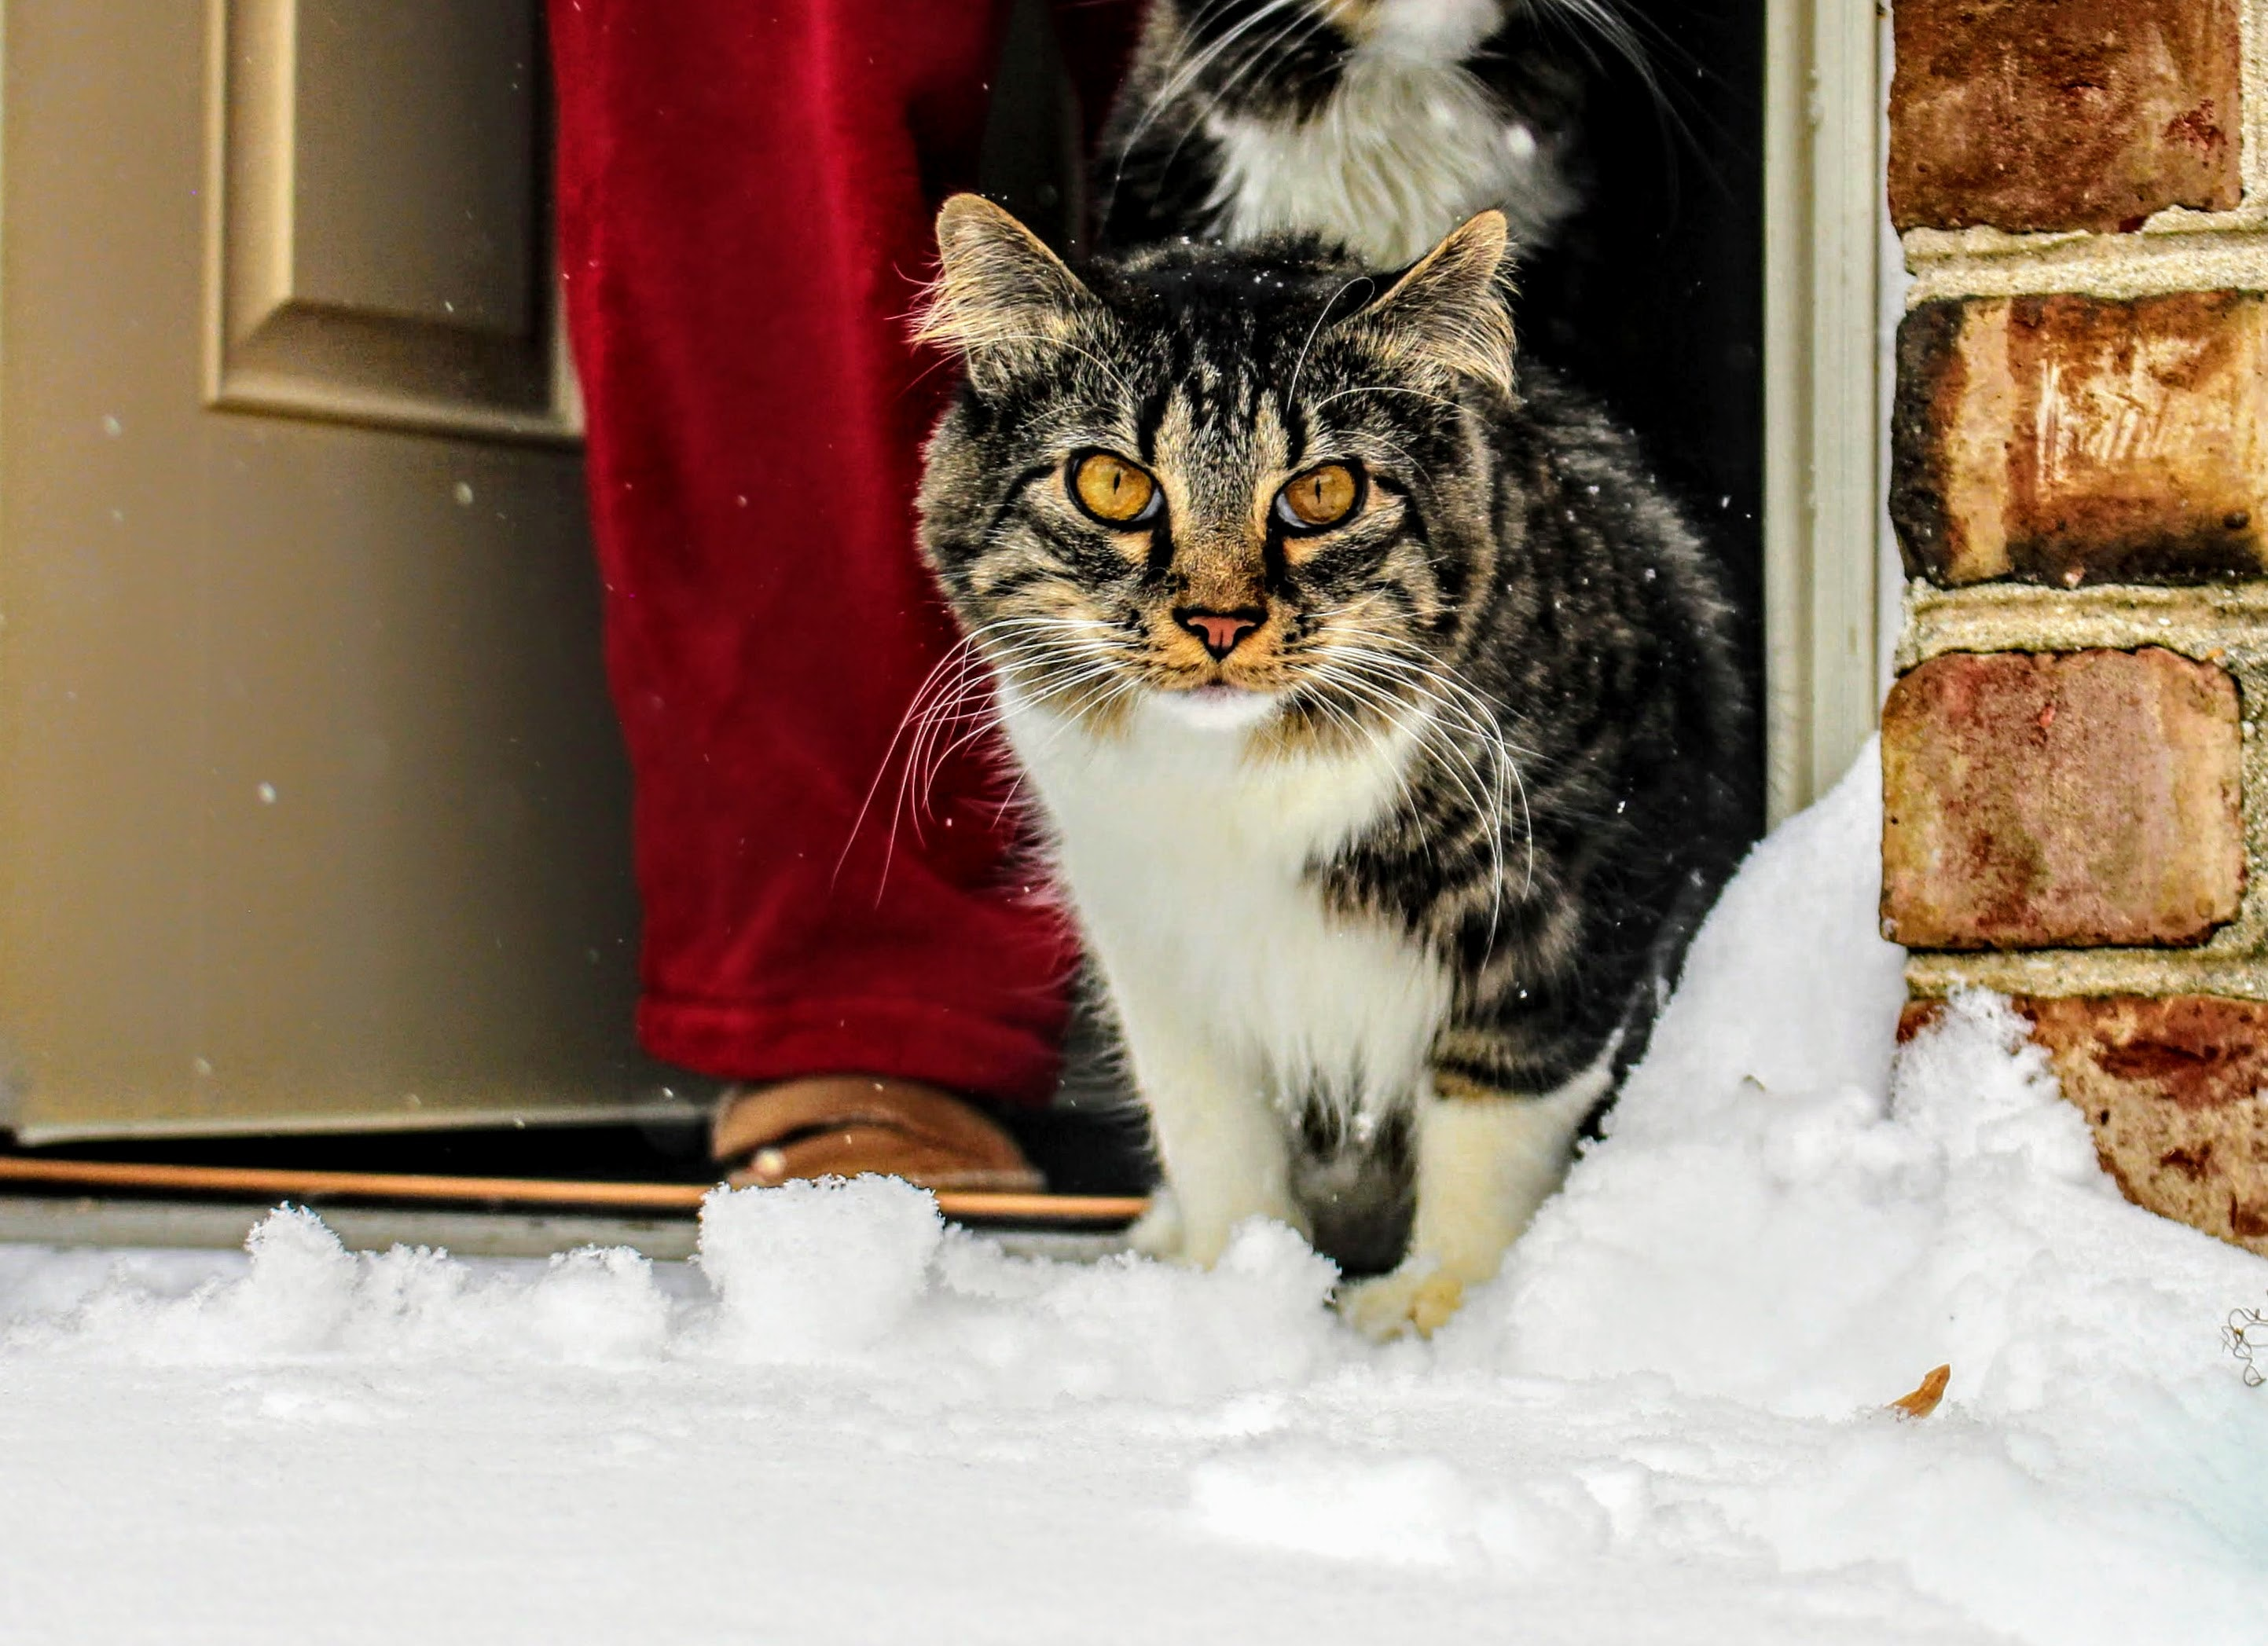 Brown, White and Black Maine Coon Cat in Front of Gray Wooden Door, Adorable, Little, Winter, Whiskers, HQ Photo